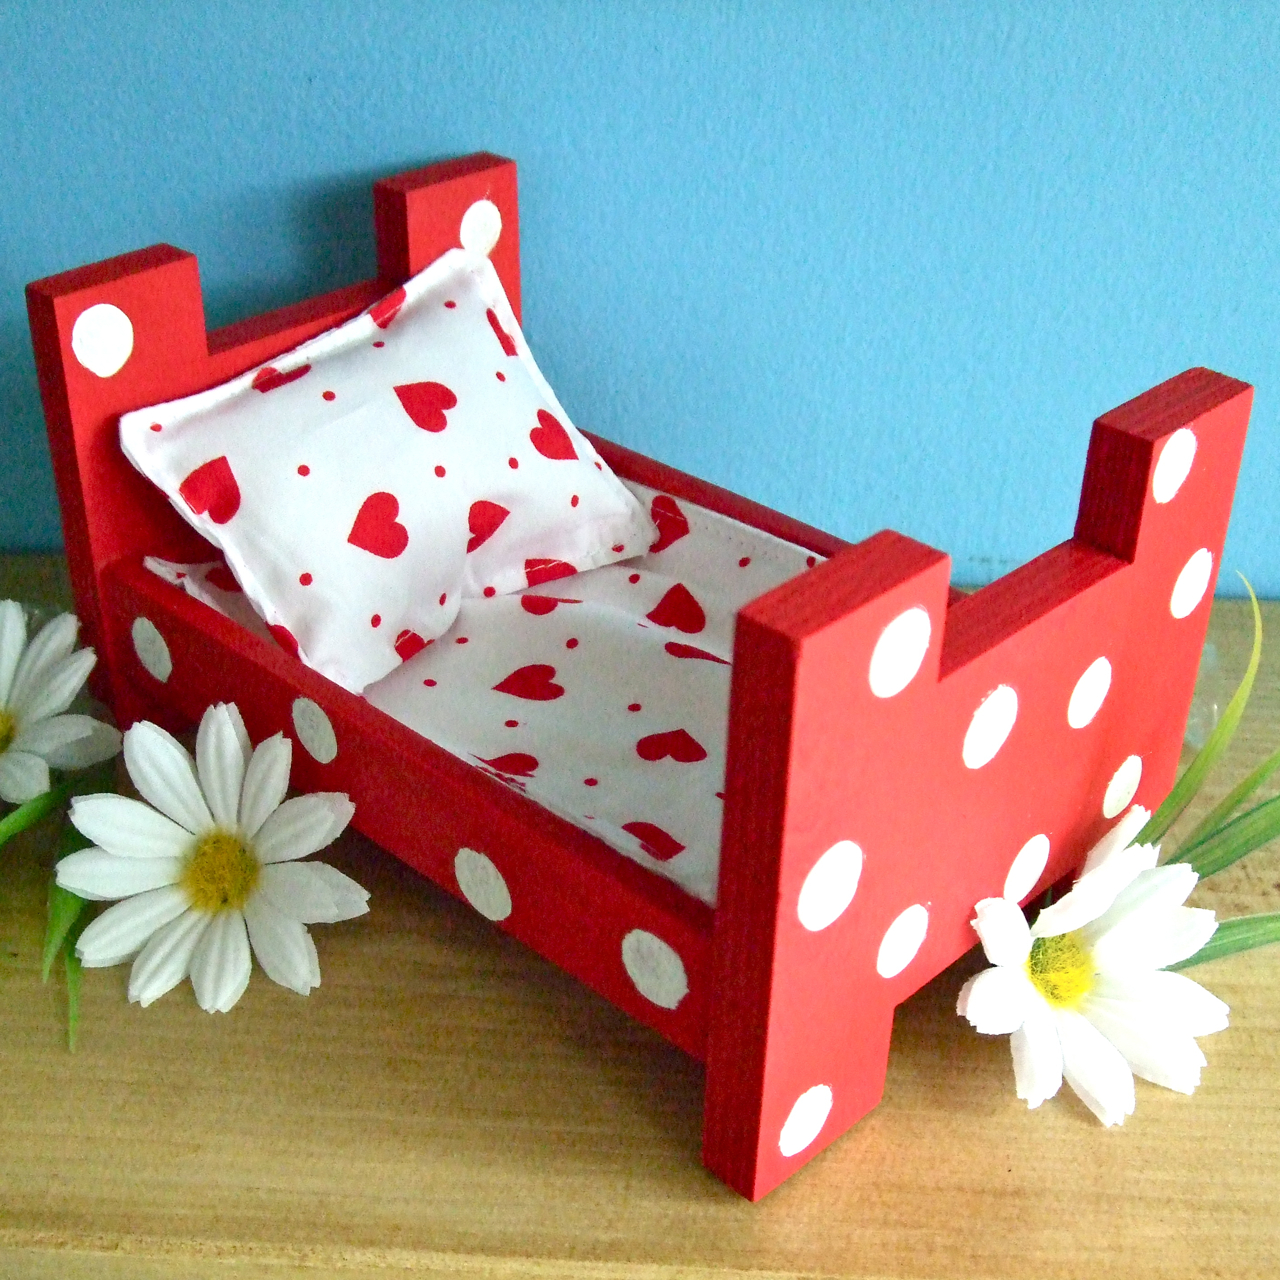 Hand Made Wood Bed For Children : ... Wooden Toy Bed for tired Sock Bunnies  Craftjuice Handmade Social